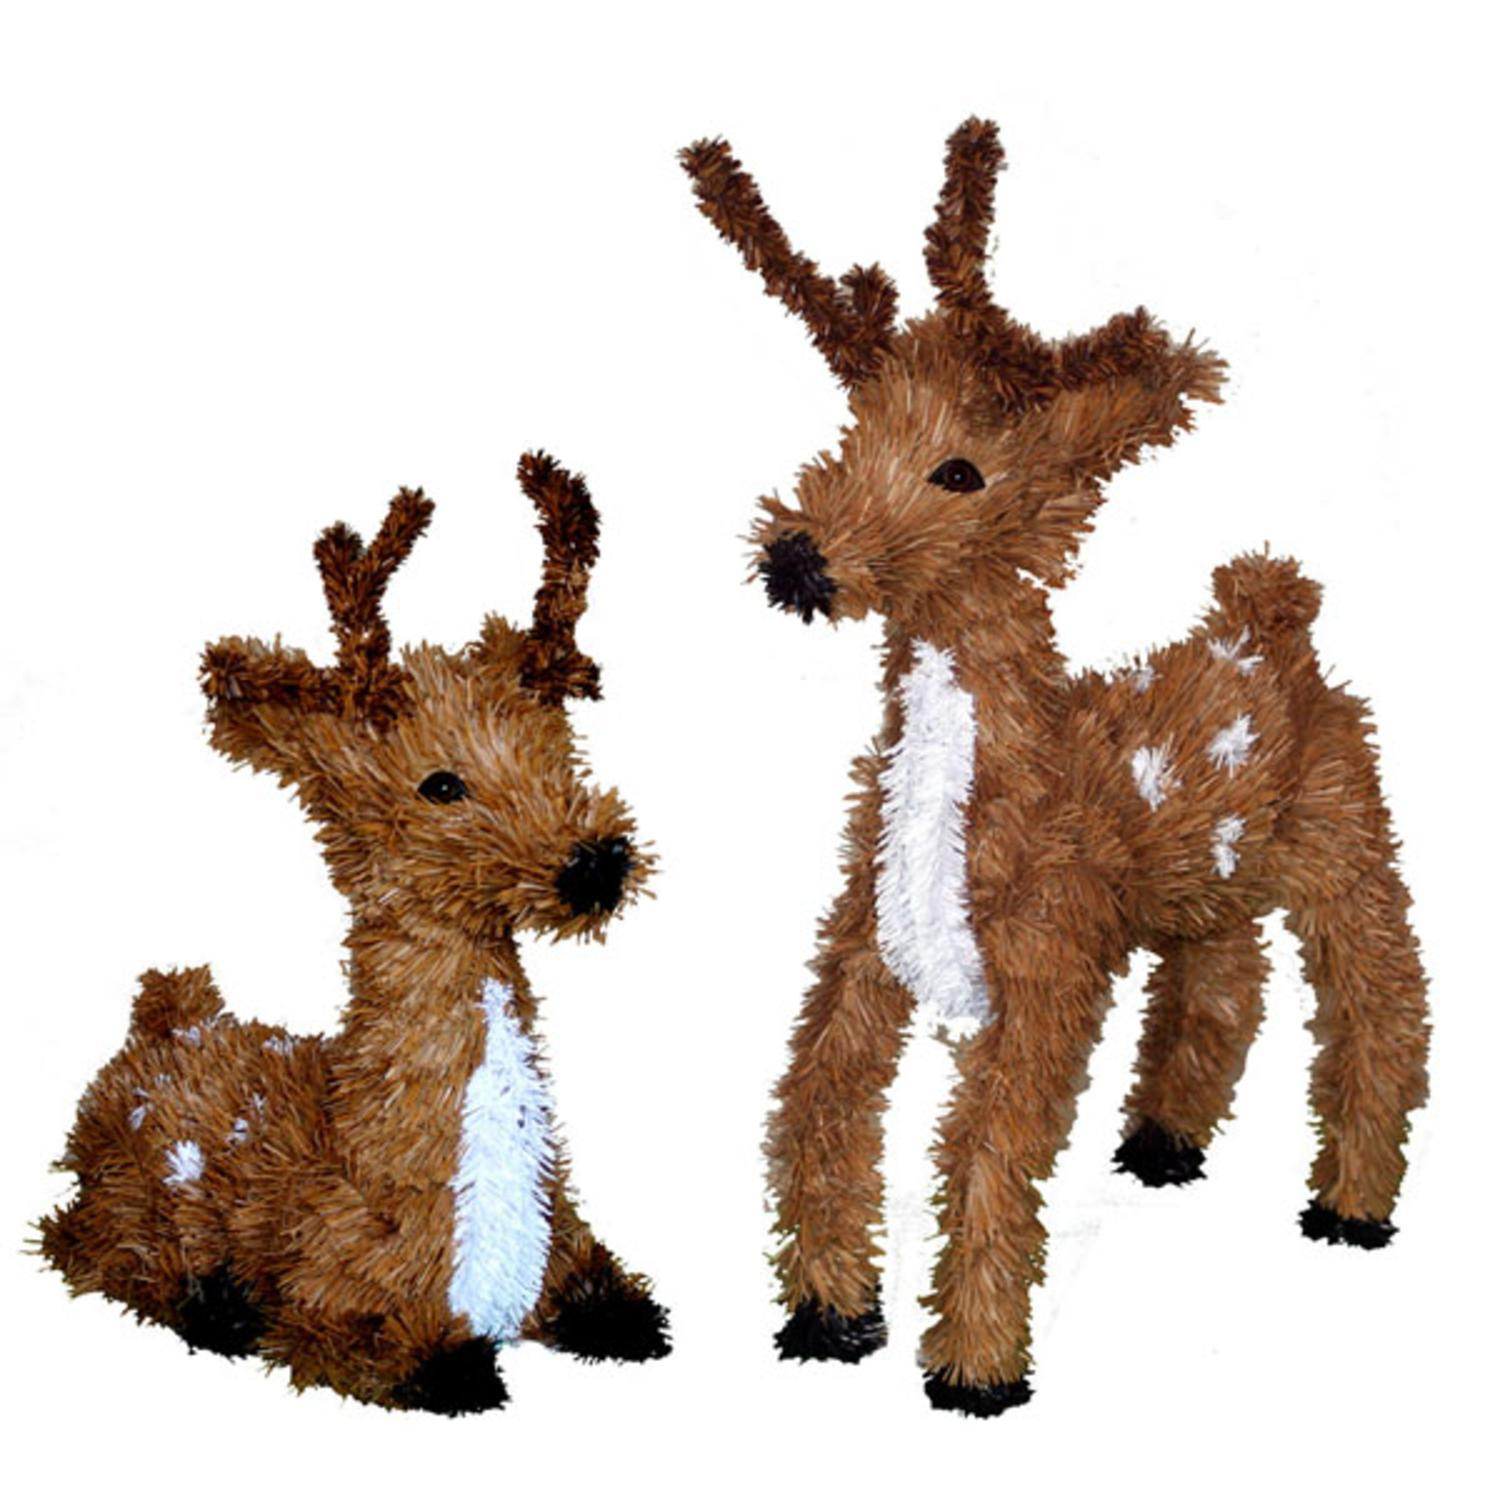 Set of 2 Sitting & Standing Reindeer Christmas Decorations ...